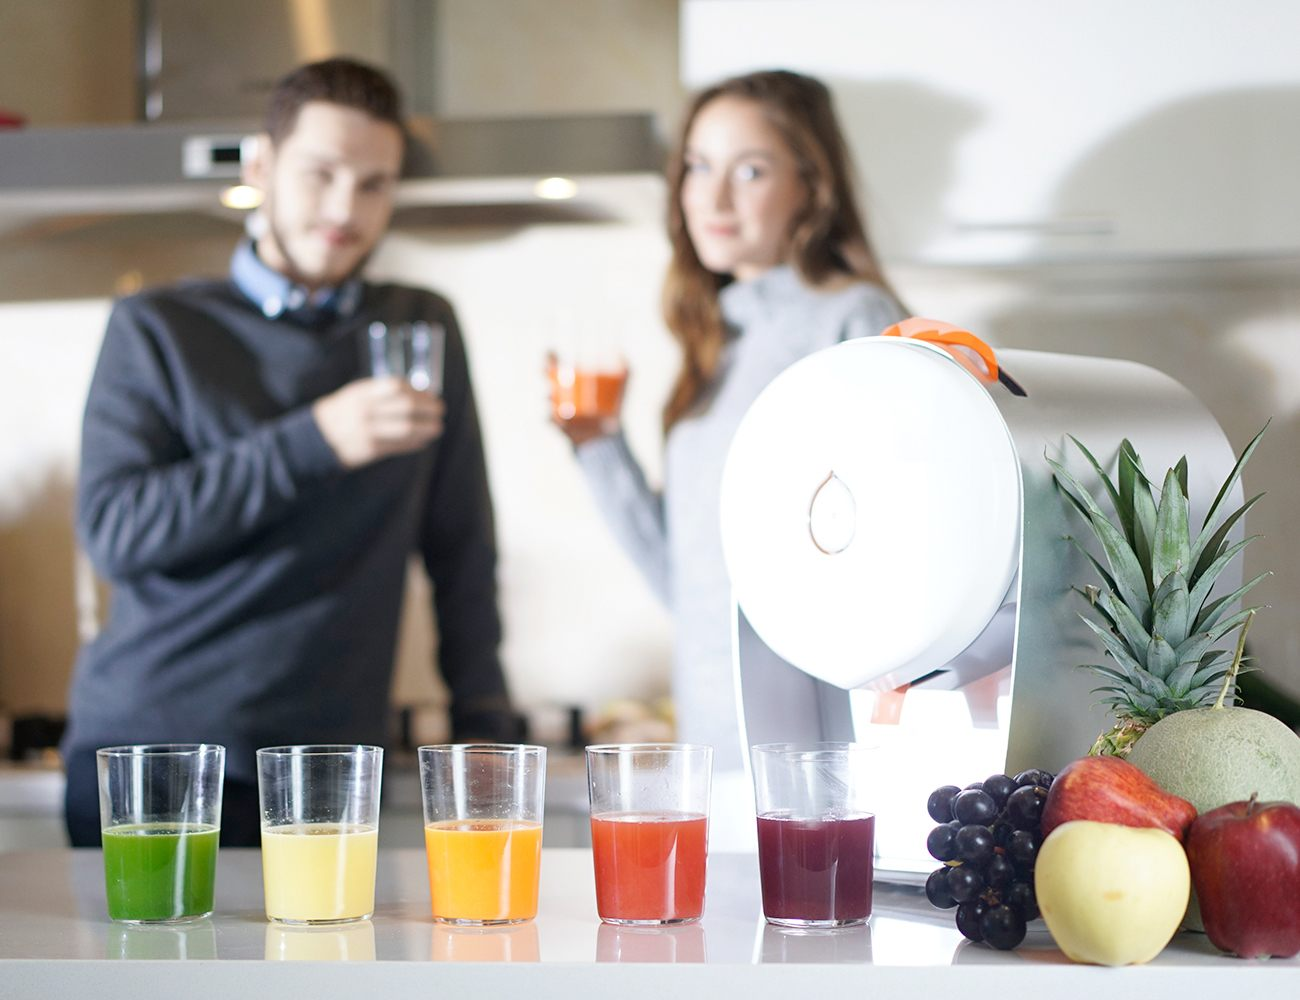 JUISIR – Juicing Without Cleaning